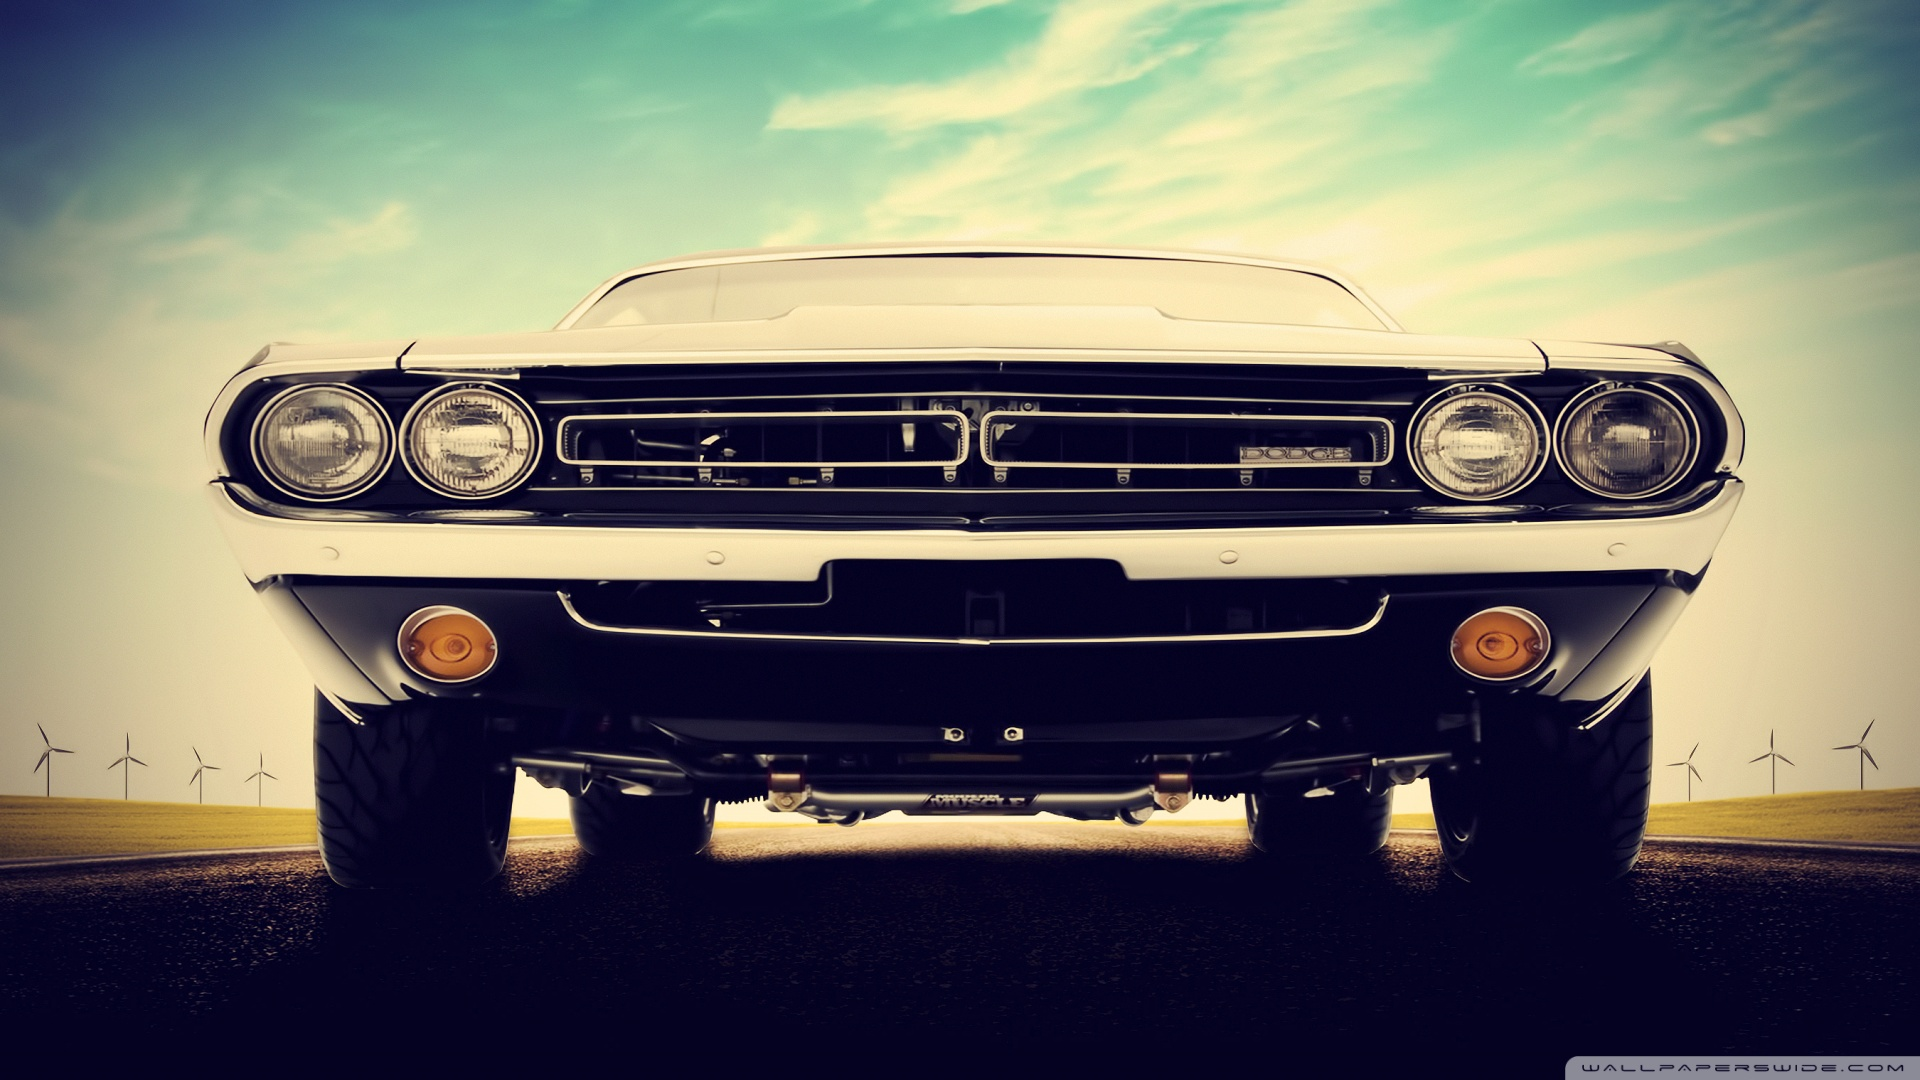 Dodge Challenger 1970 Wallpaper Dodge Challenger 1971 Rt Wallpaper By Rick Souza 4k Hd Desktop